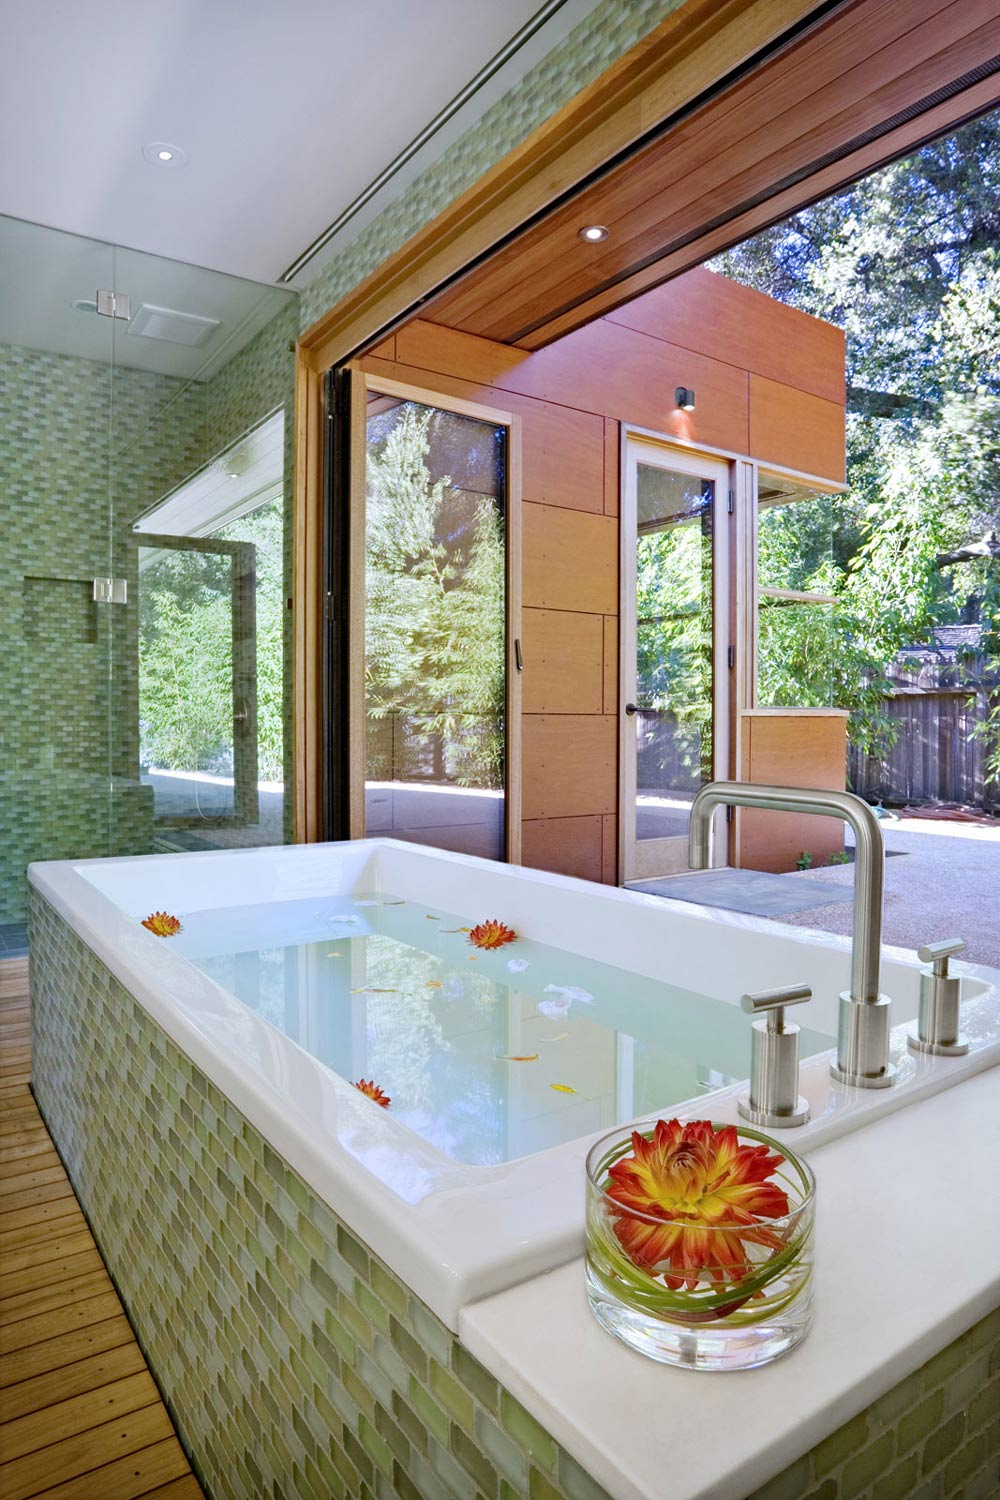 Bath, Wheeler Residence in Menlo Park, California by William Duff Architects